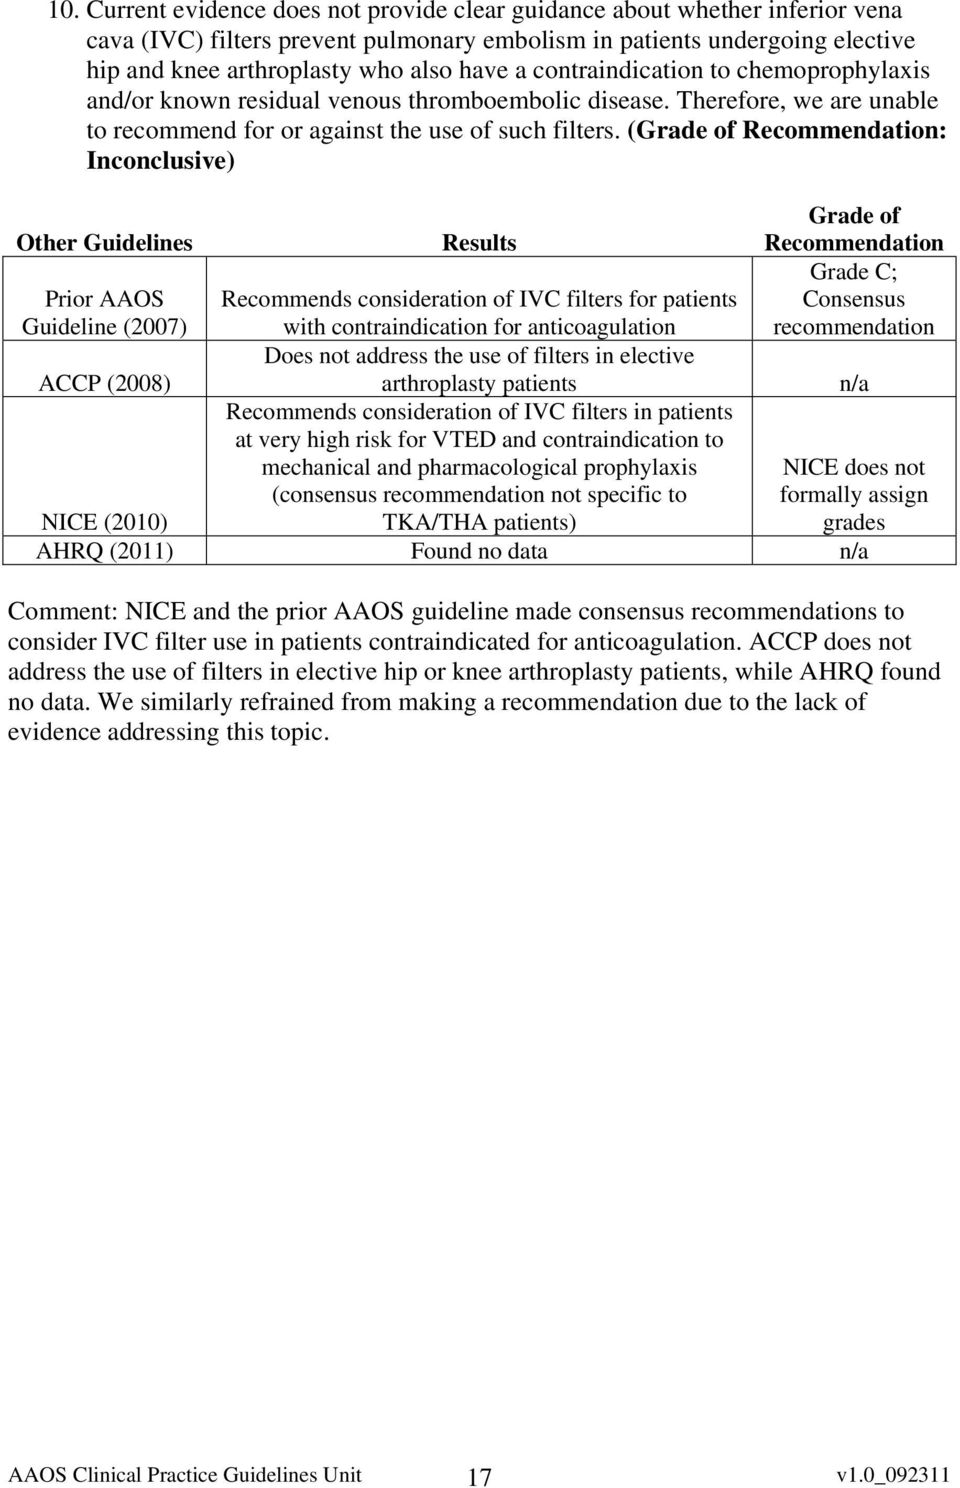 (Grade of Recommendation: Inconclusive) Other Guidelines Results Grade of Recommendation Prior AAOS Guideline (2007) Recommends consideration of IVC filters for patients with contraindication for